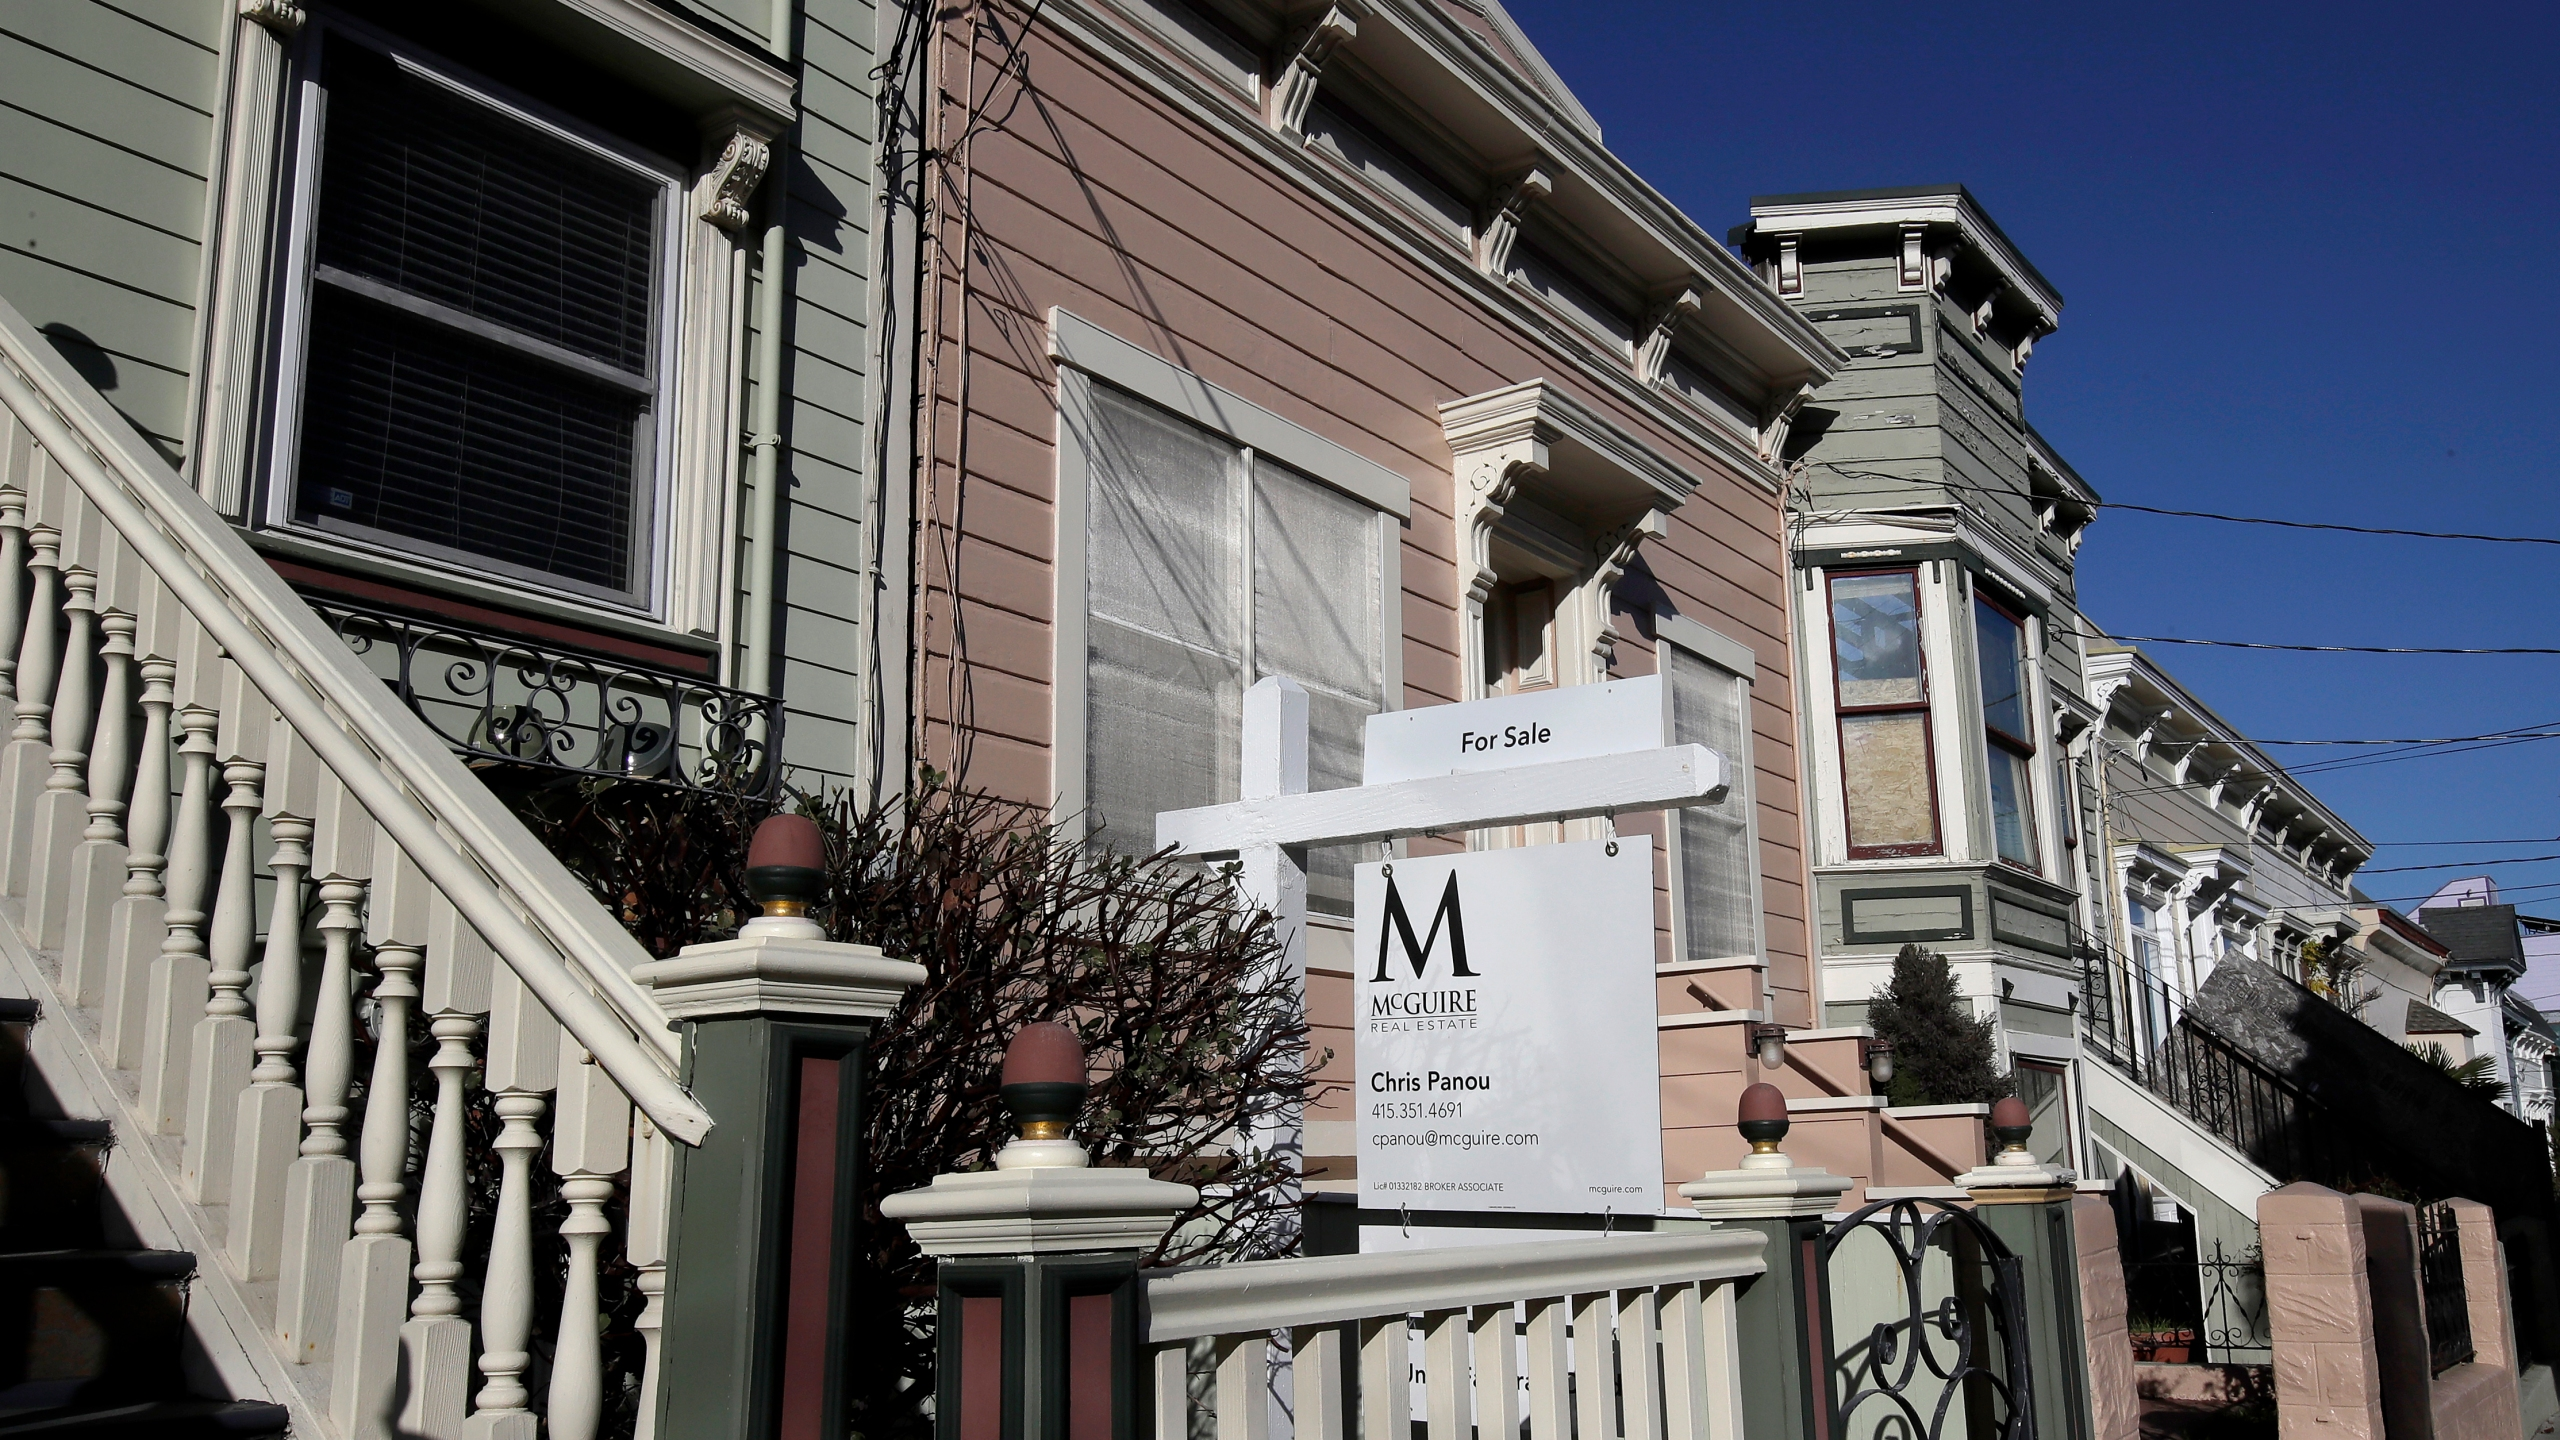 In this Feb. 18, 2020, file photo a real estate sign is shown in front of a home for sale in San Francisco. (AP Photo/Jeff Chiu, File)